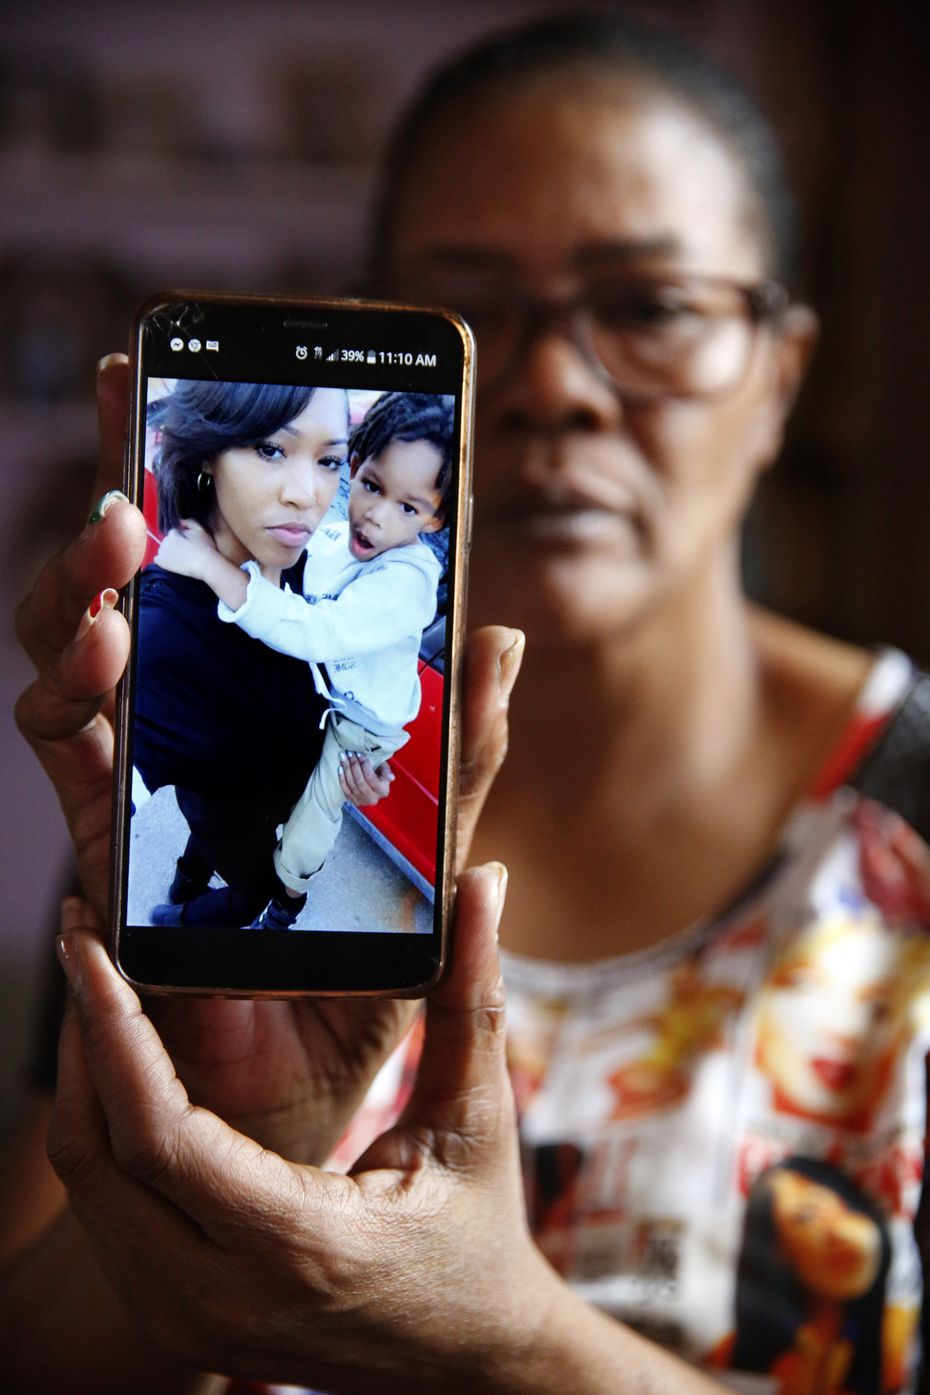 Tammy Kirk, mother of LaTiffiney Rodgers, who was fatally shot and her sons were the subject of an Amber Alert, is photographed in her Cedar Hill home. She is holding a photo on her phone of LaTiffiney and her oldest son, 7-year-old Jorden Rodgers.